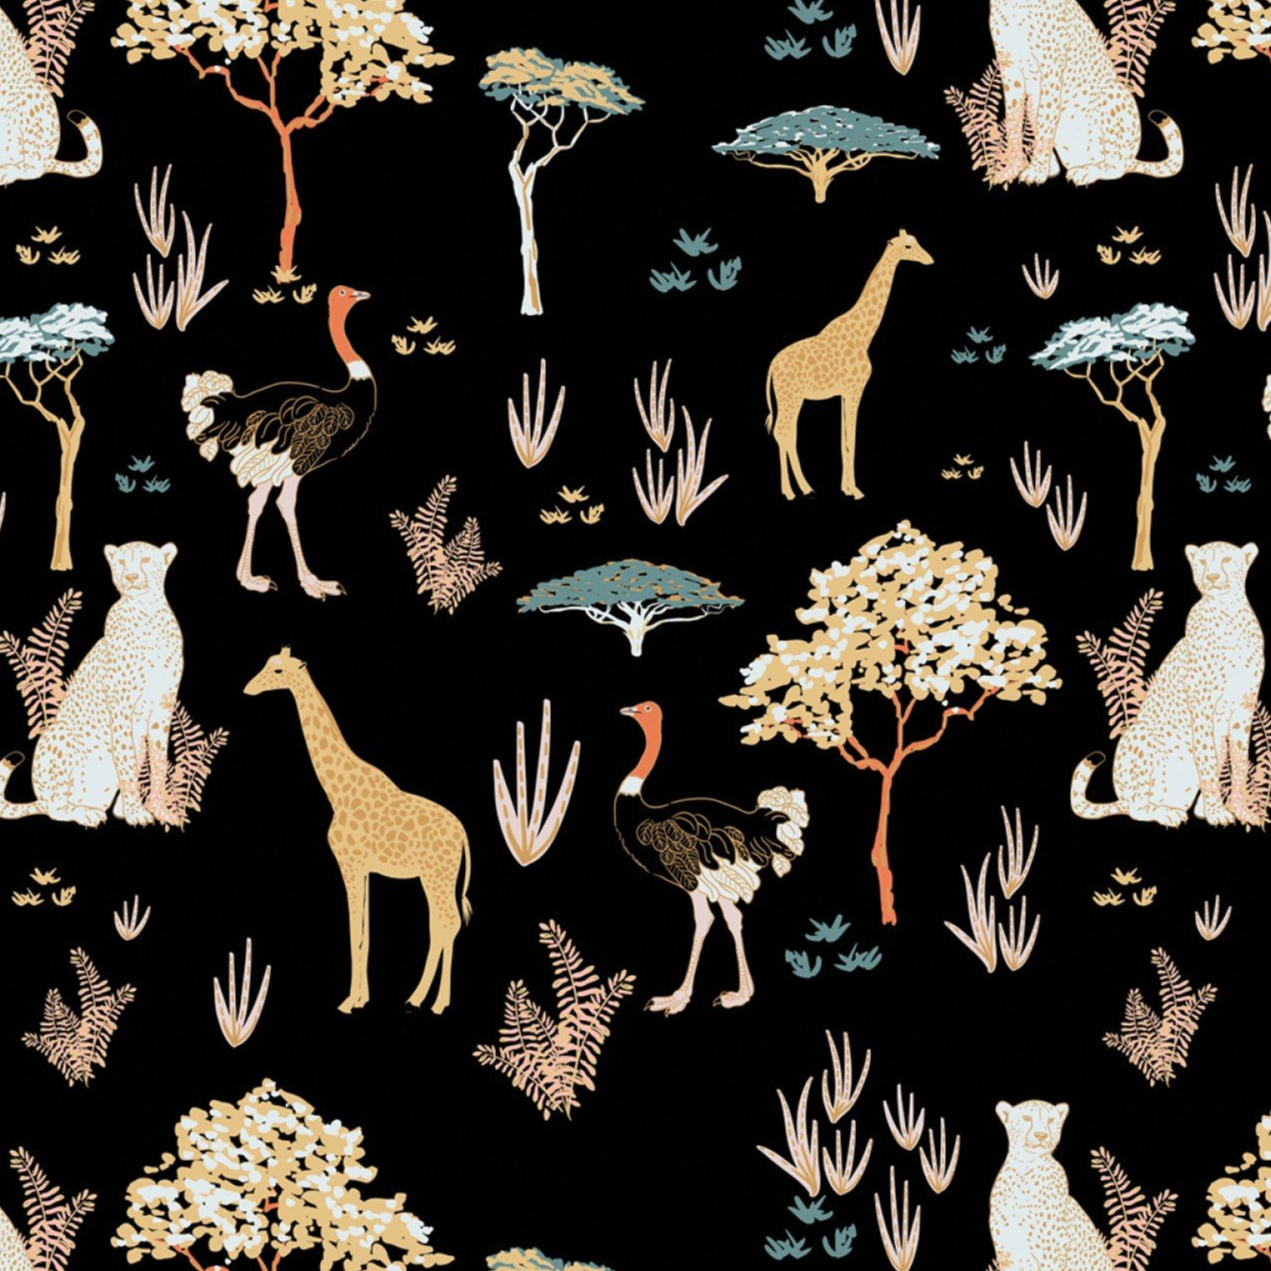 Safari Dreams in Black